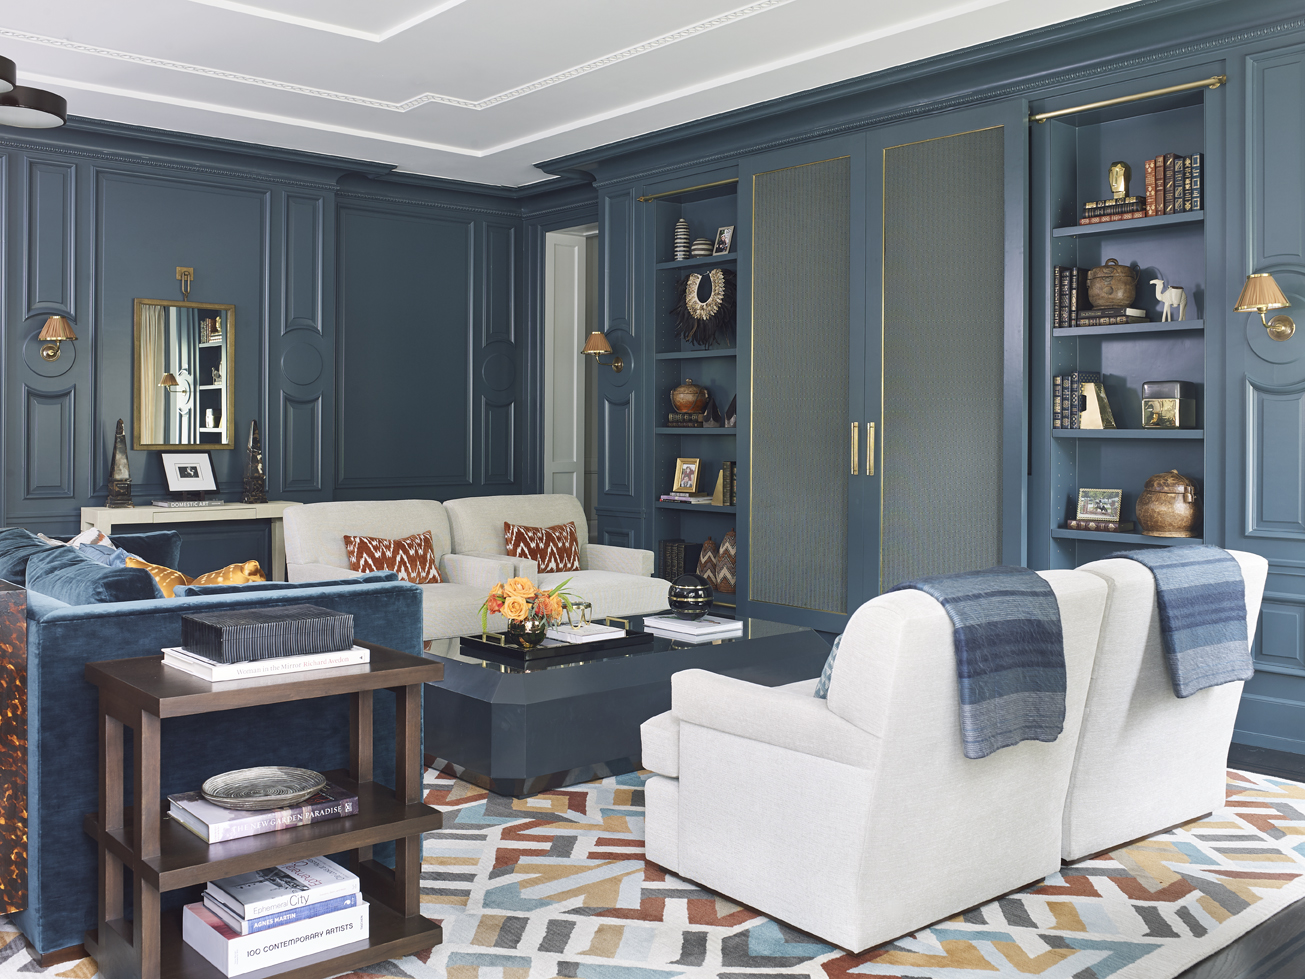 The boiserie was inspired by the Petit Trianon in Versailles, which was built a century after the Grand Trianon during the transition from the Recoco to Neoclassical period in France; sliding media doors stylishly obscure electronic equipment.